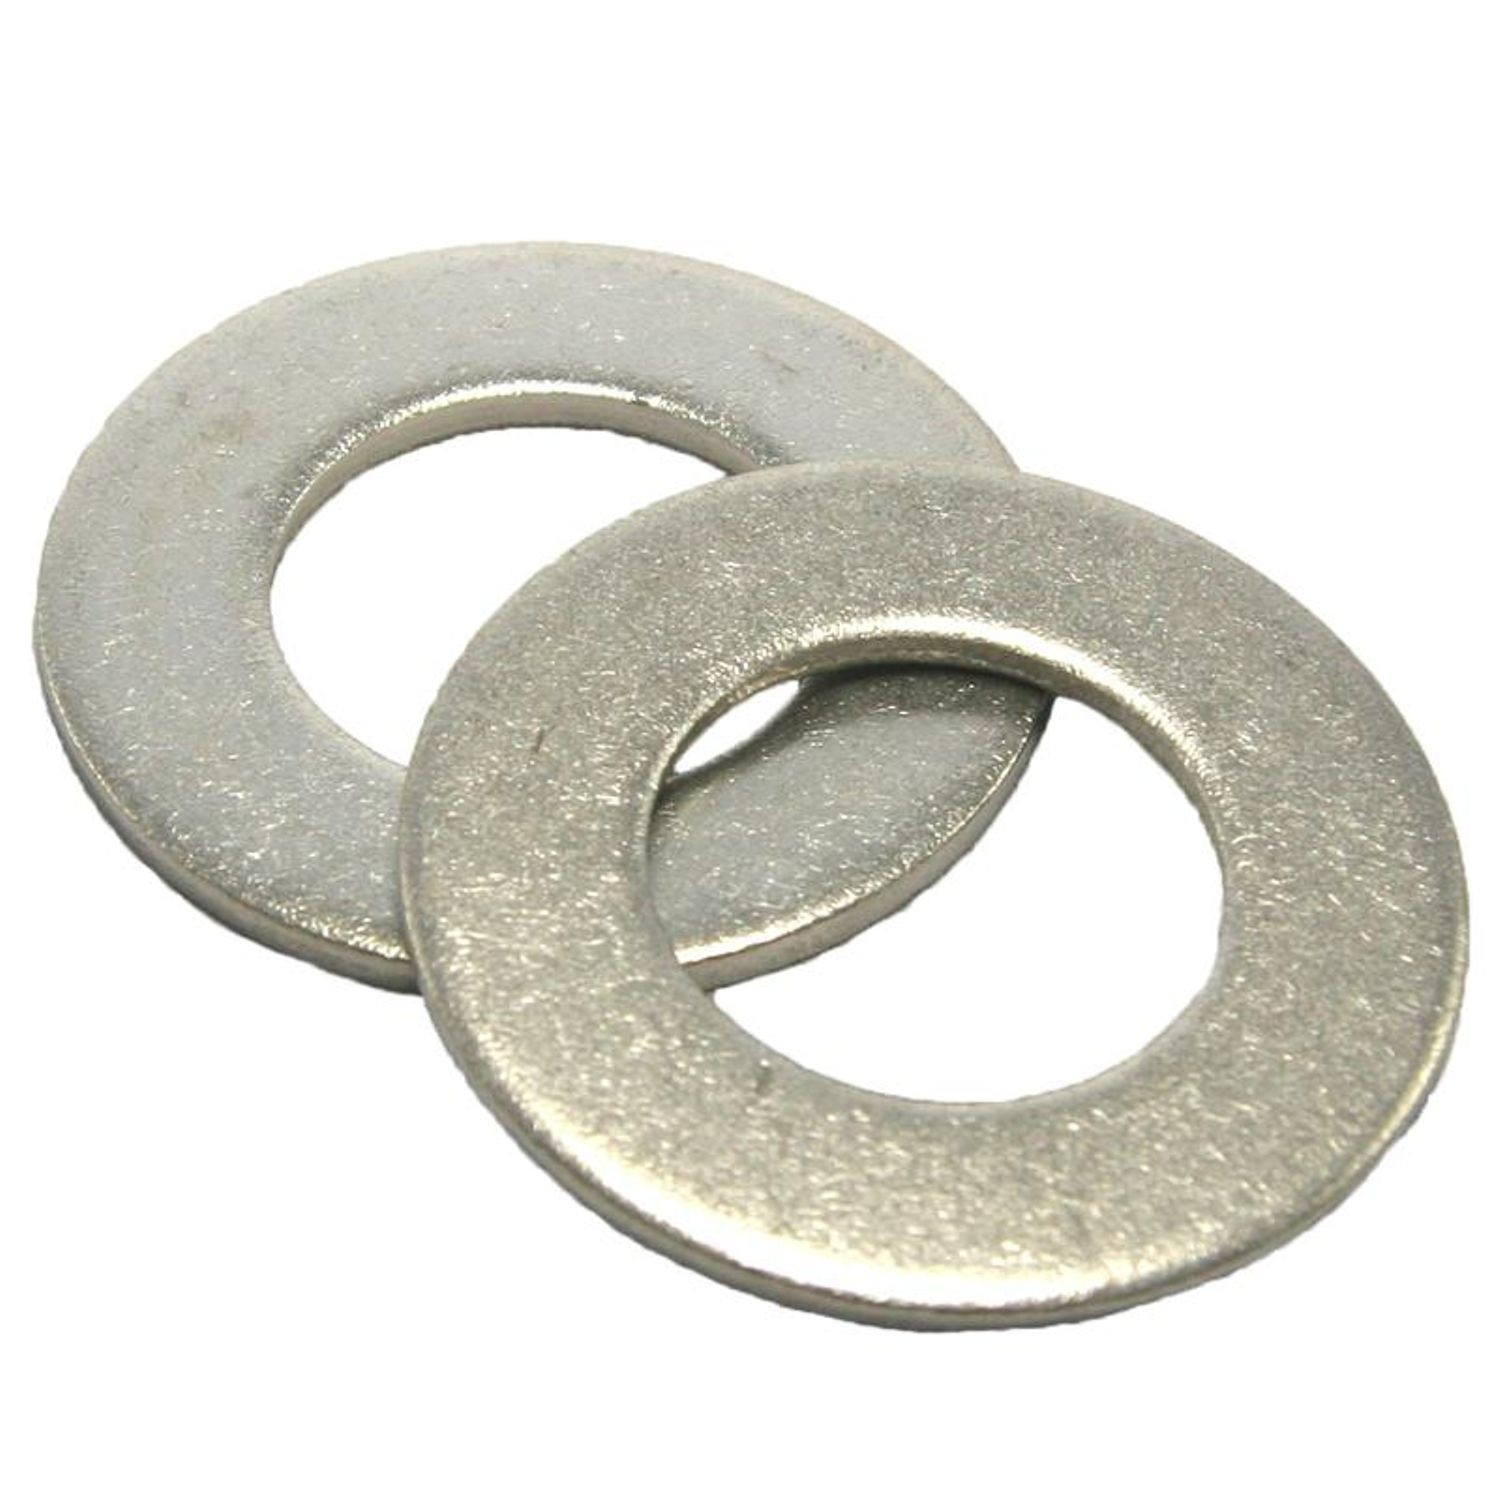 #12 Stainless Steel Flat Washer 18-8